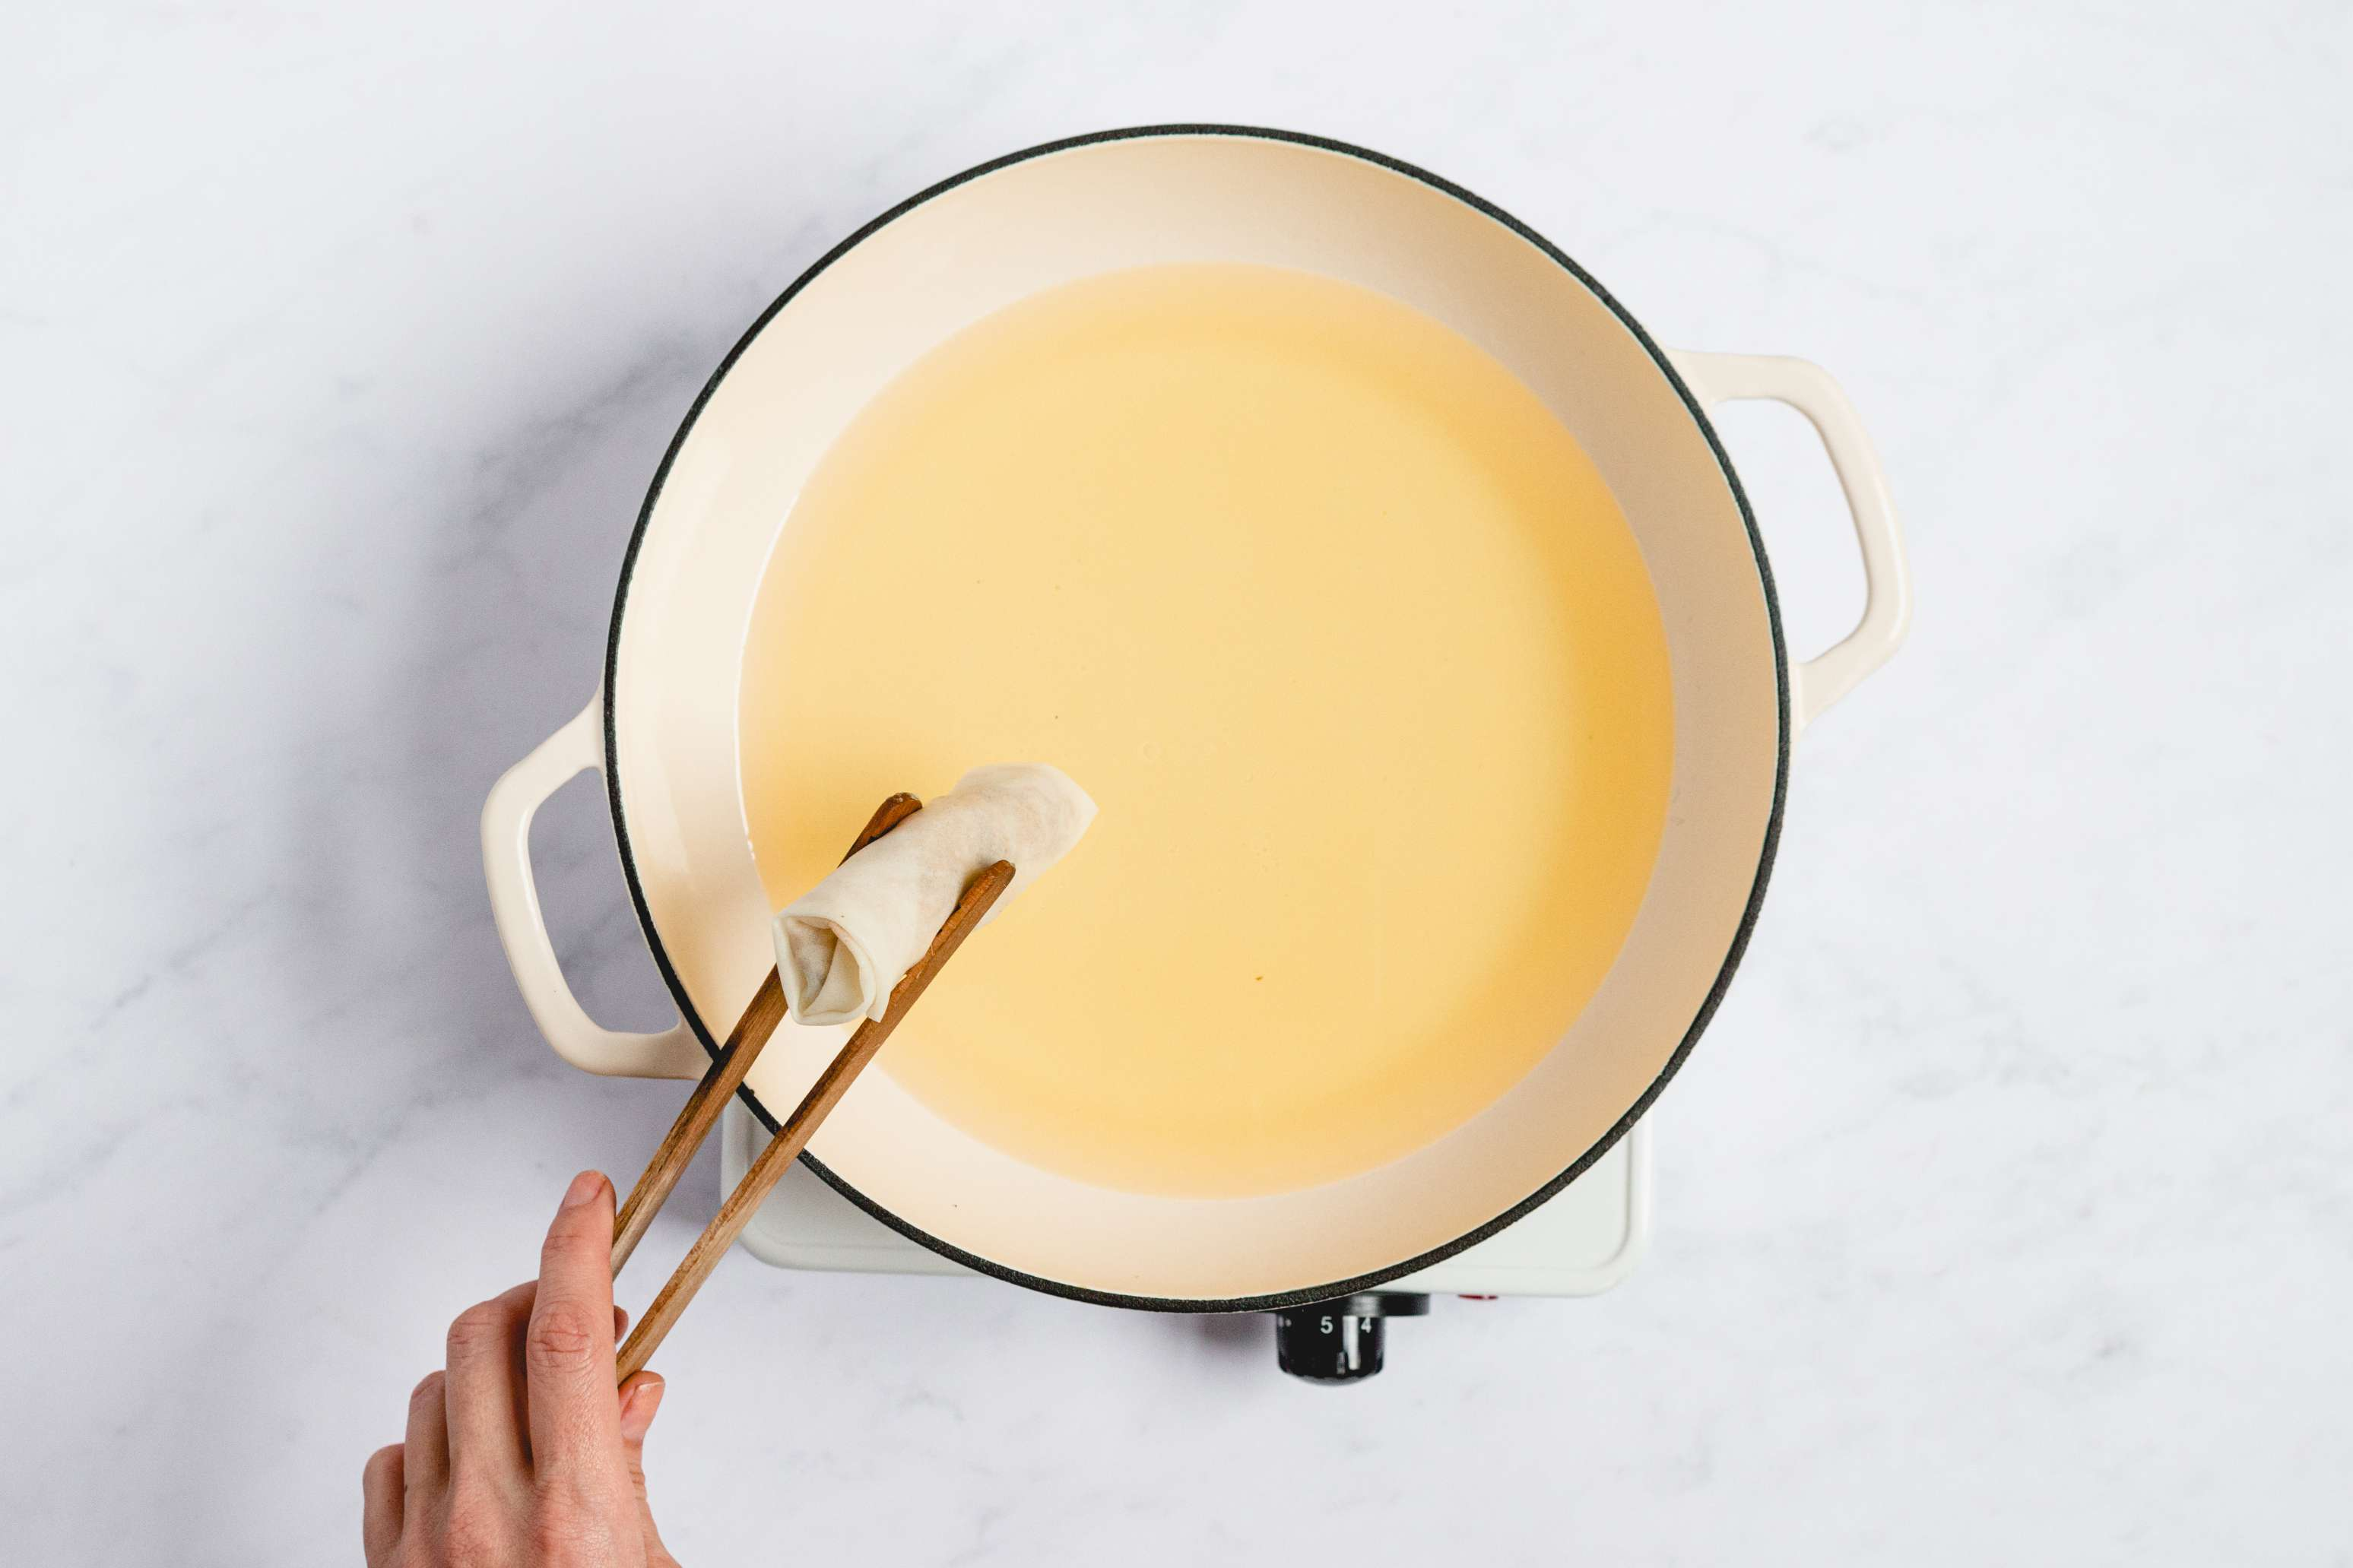 pot with oil, egg roll being held with tongs